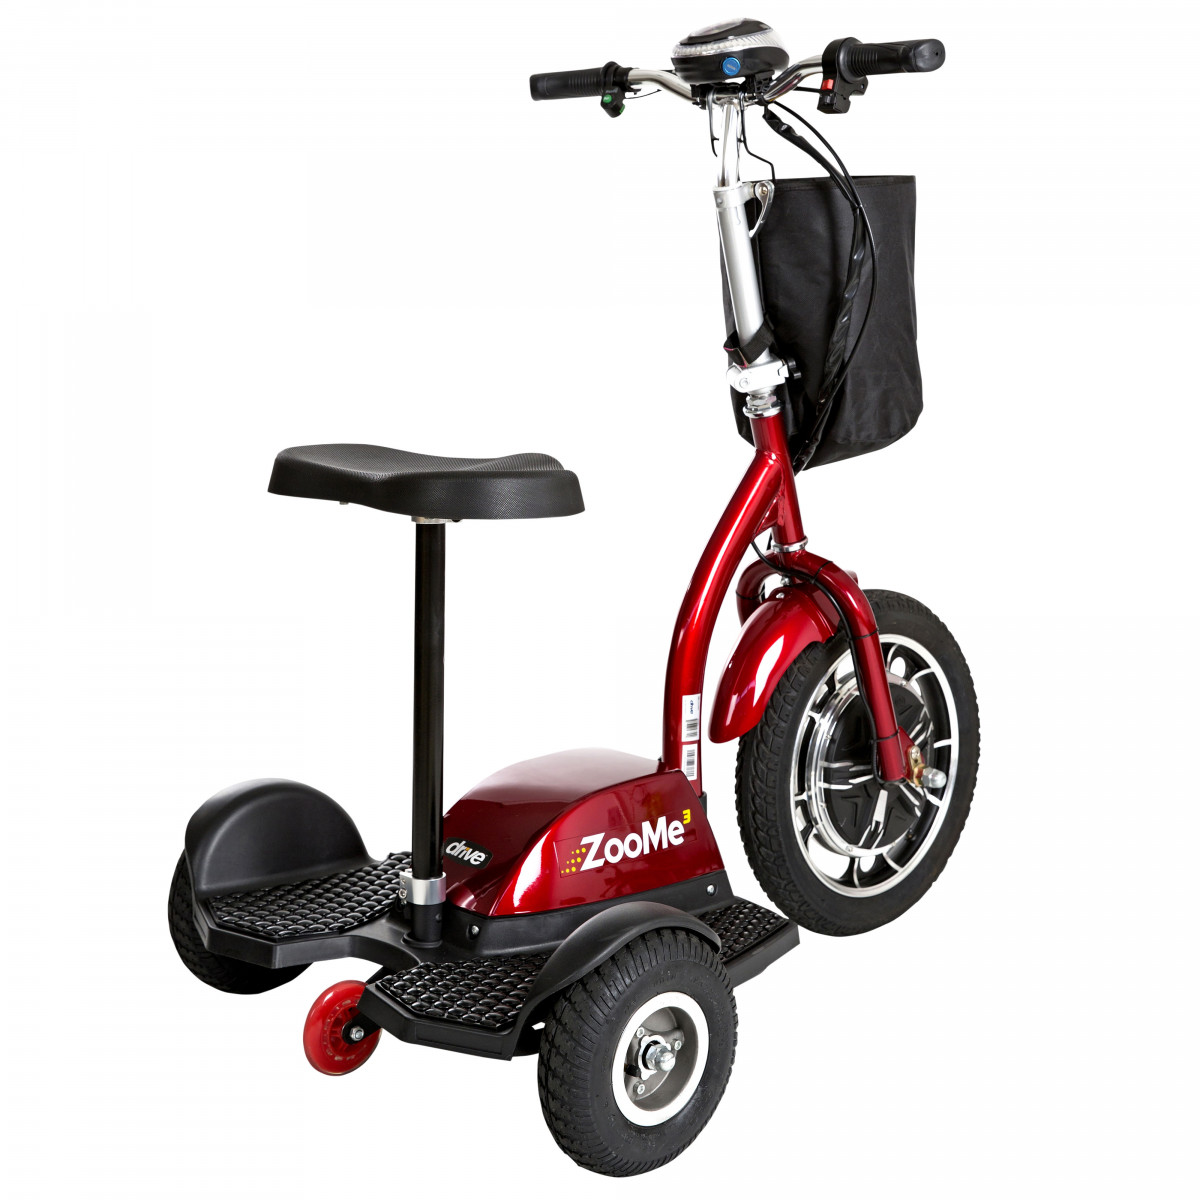 zoome 3 wheel recreational scooter bb0